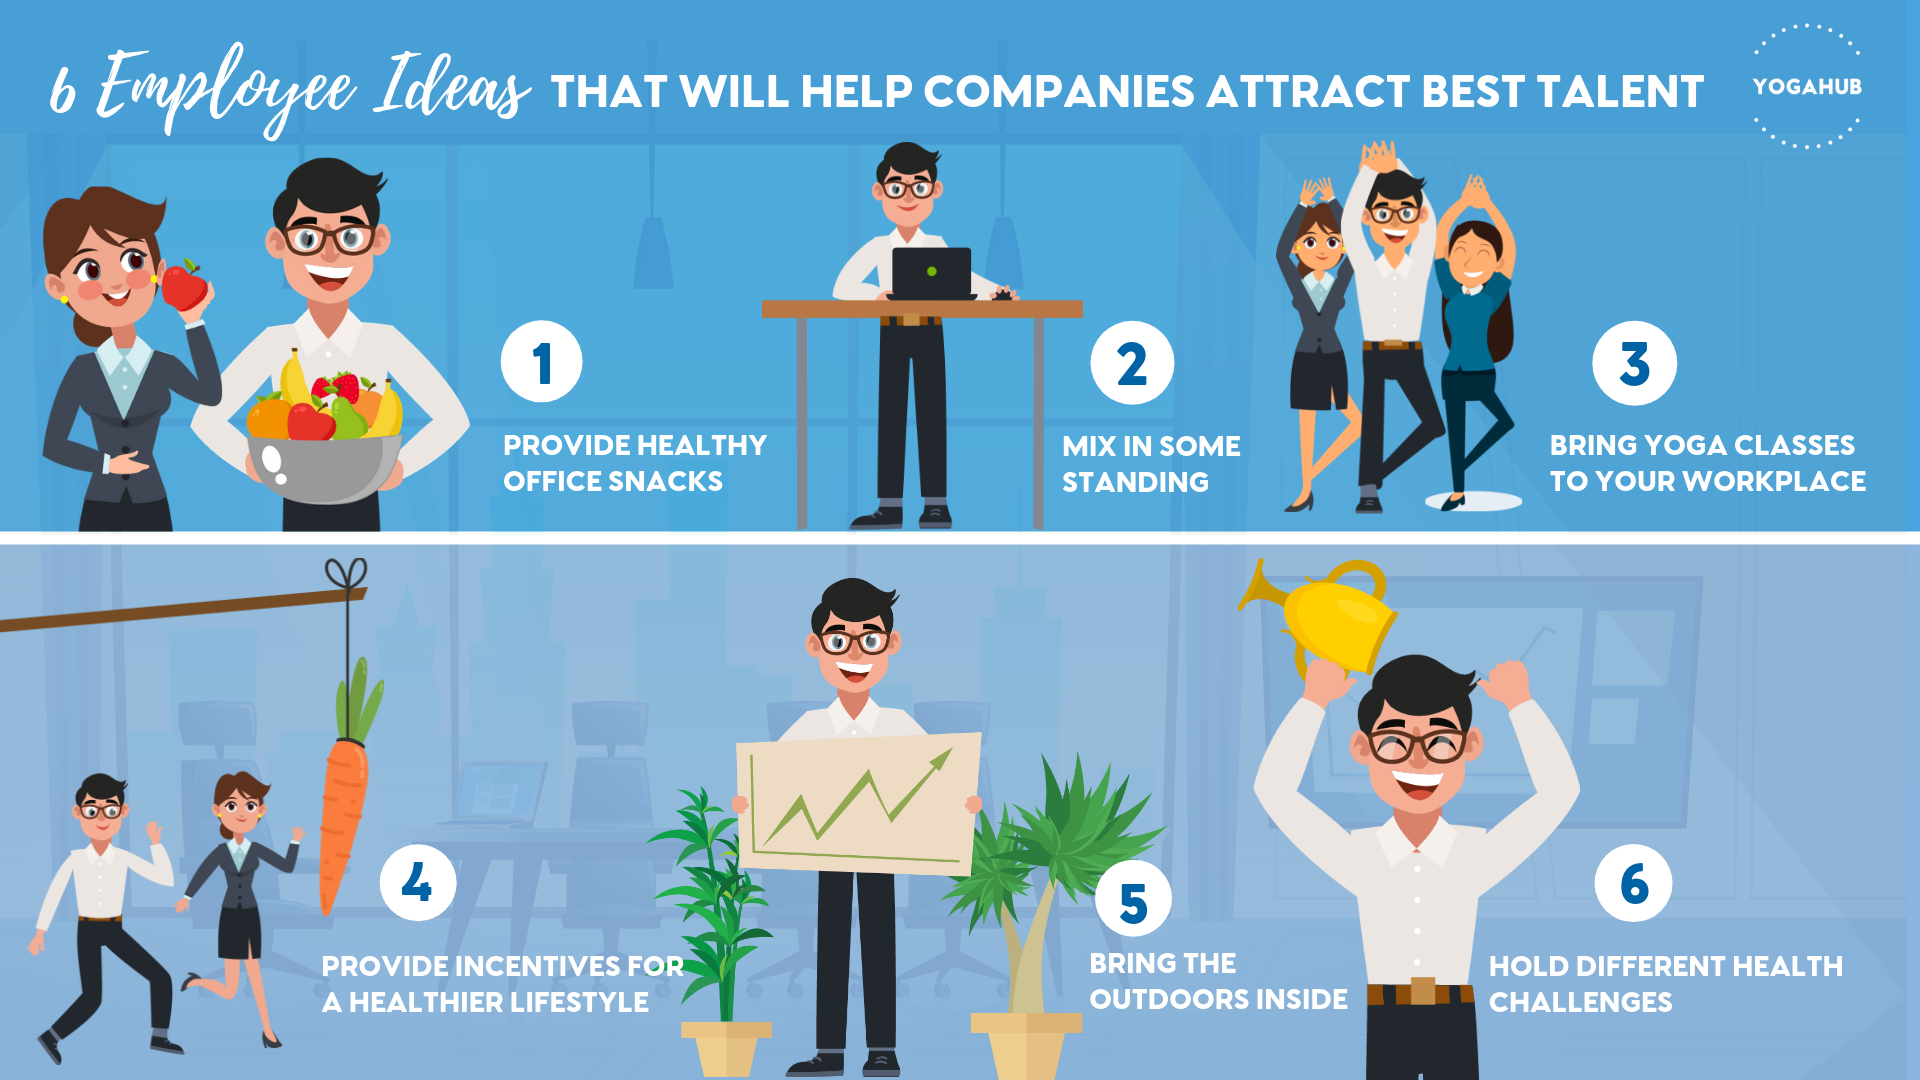 6-employee-ideas-that-will-help-companies-attract-best-talent.png